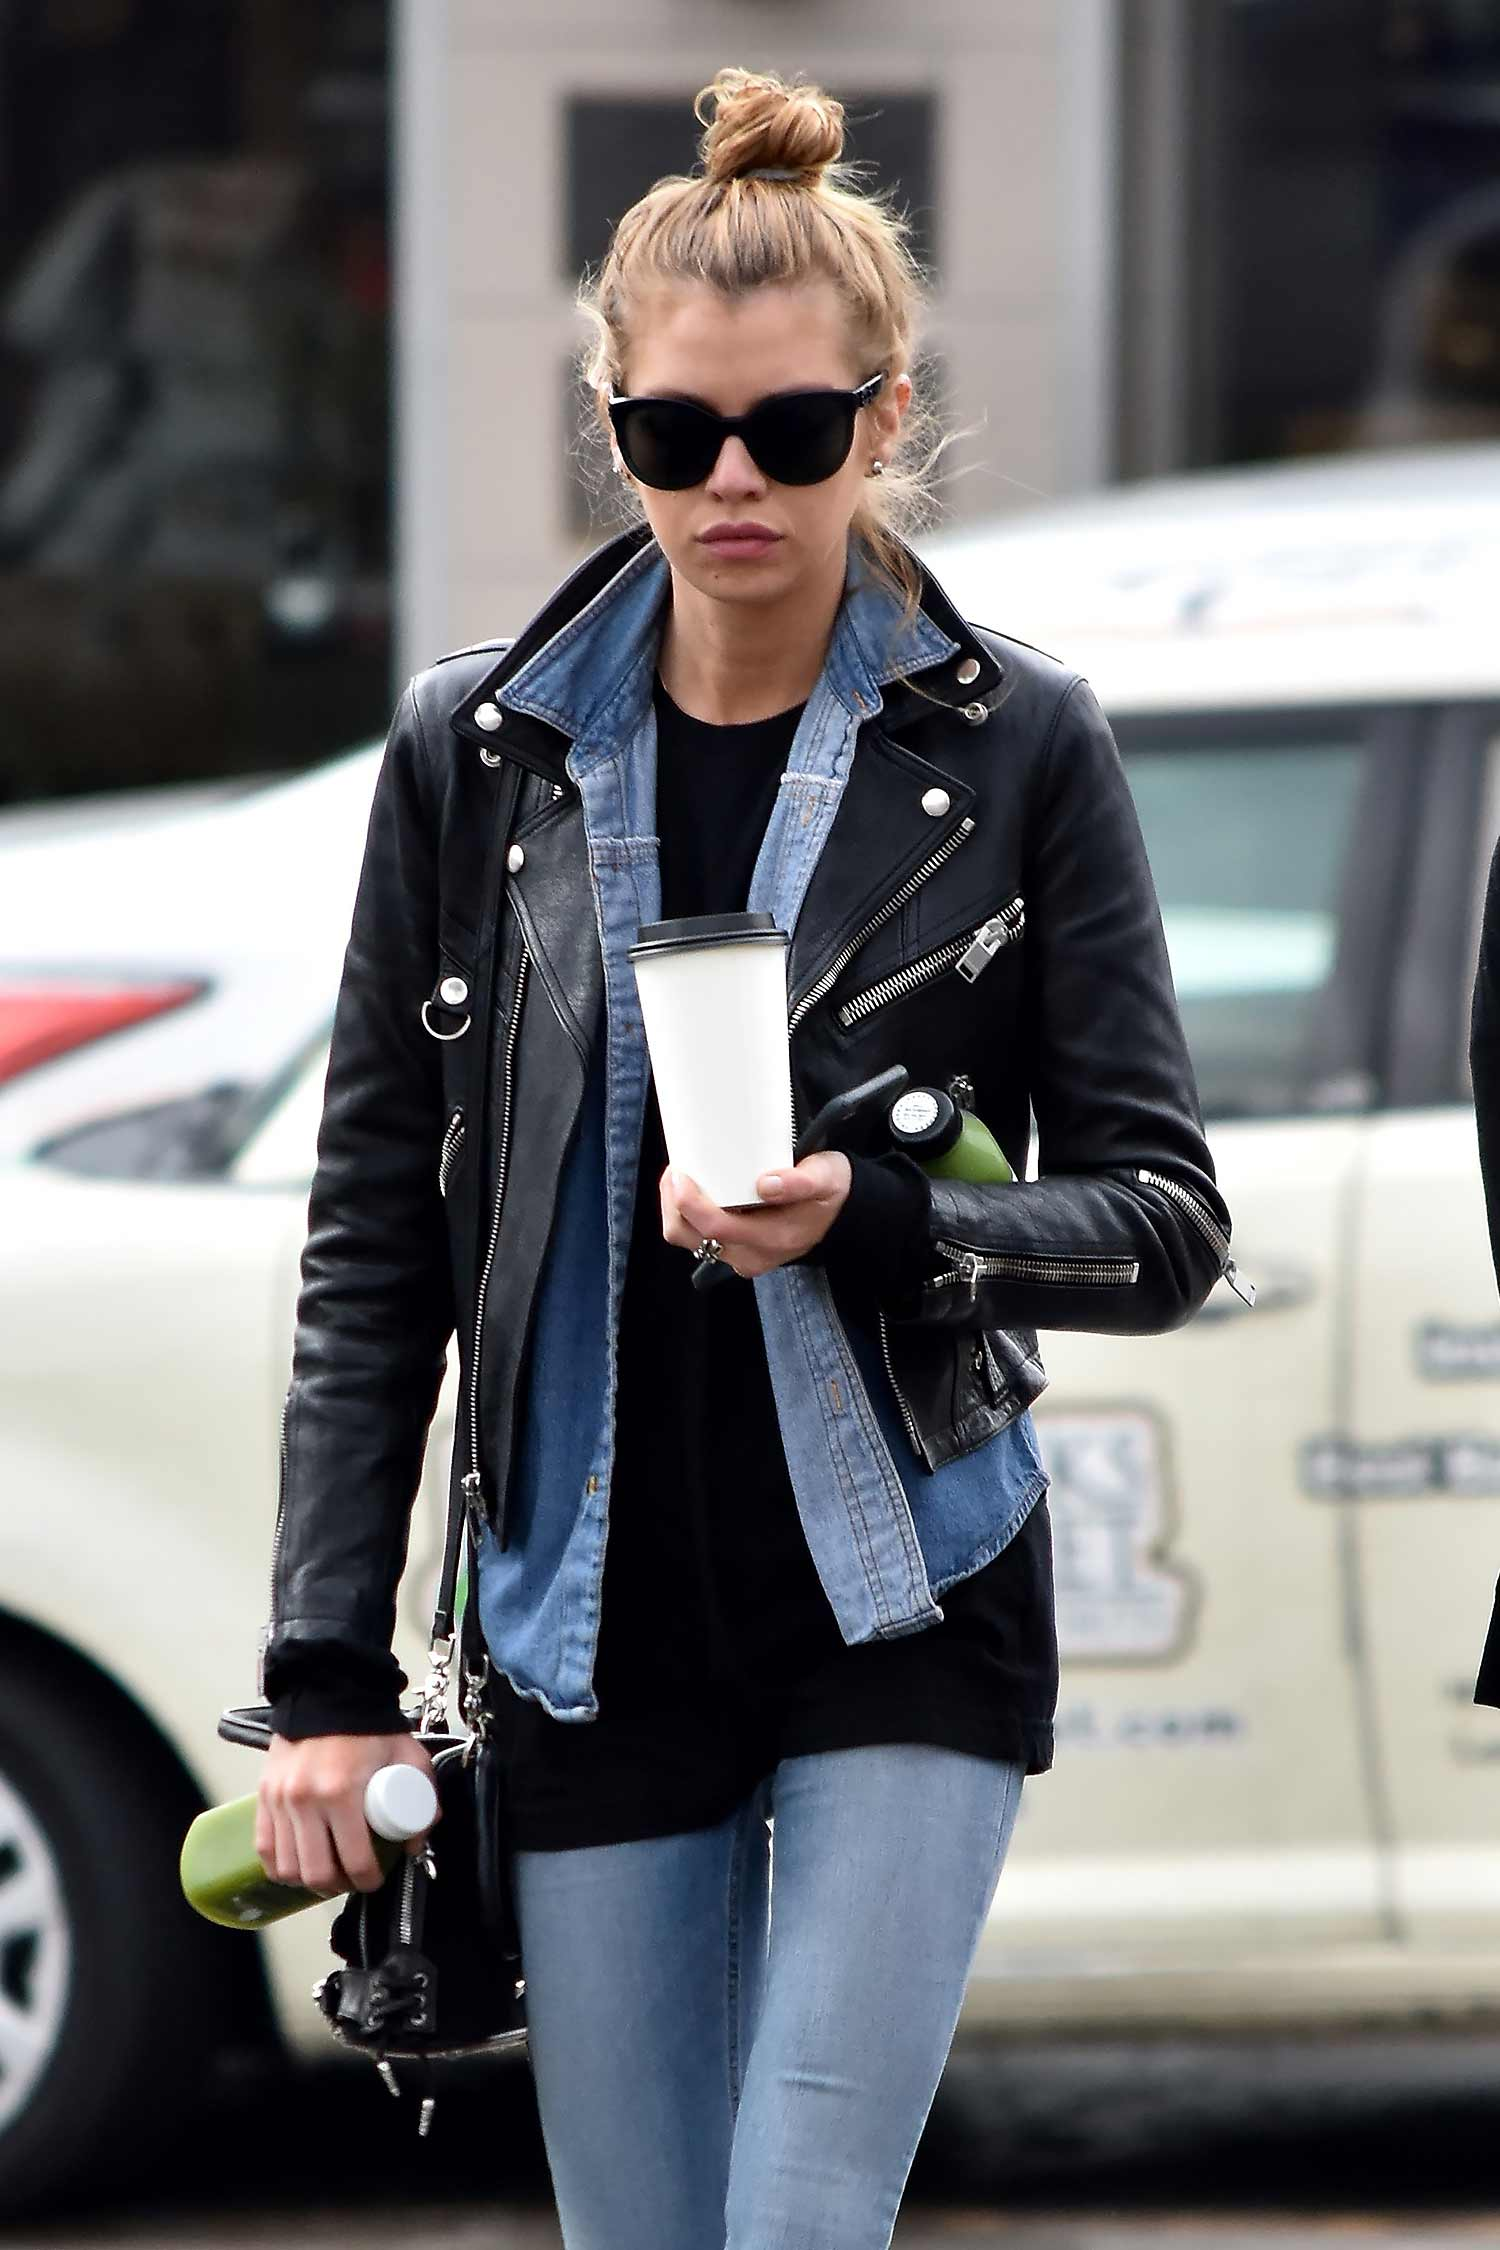 stella-maxwell-double-denim-leather-jacket